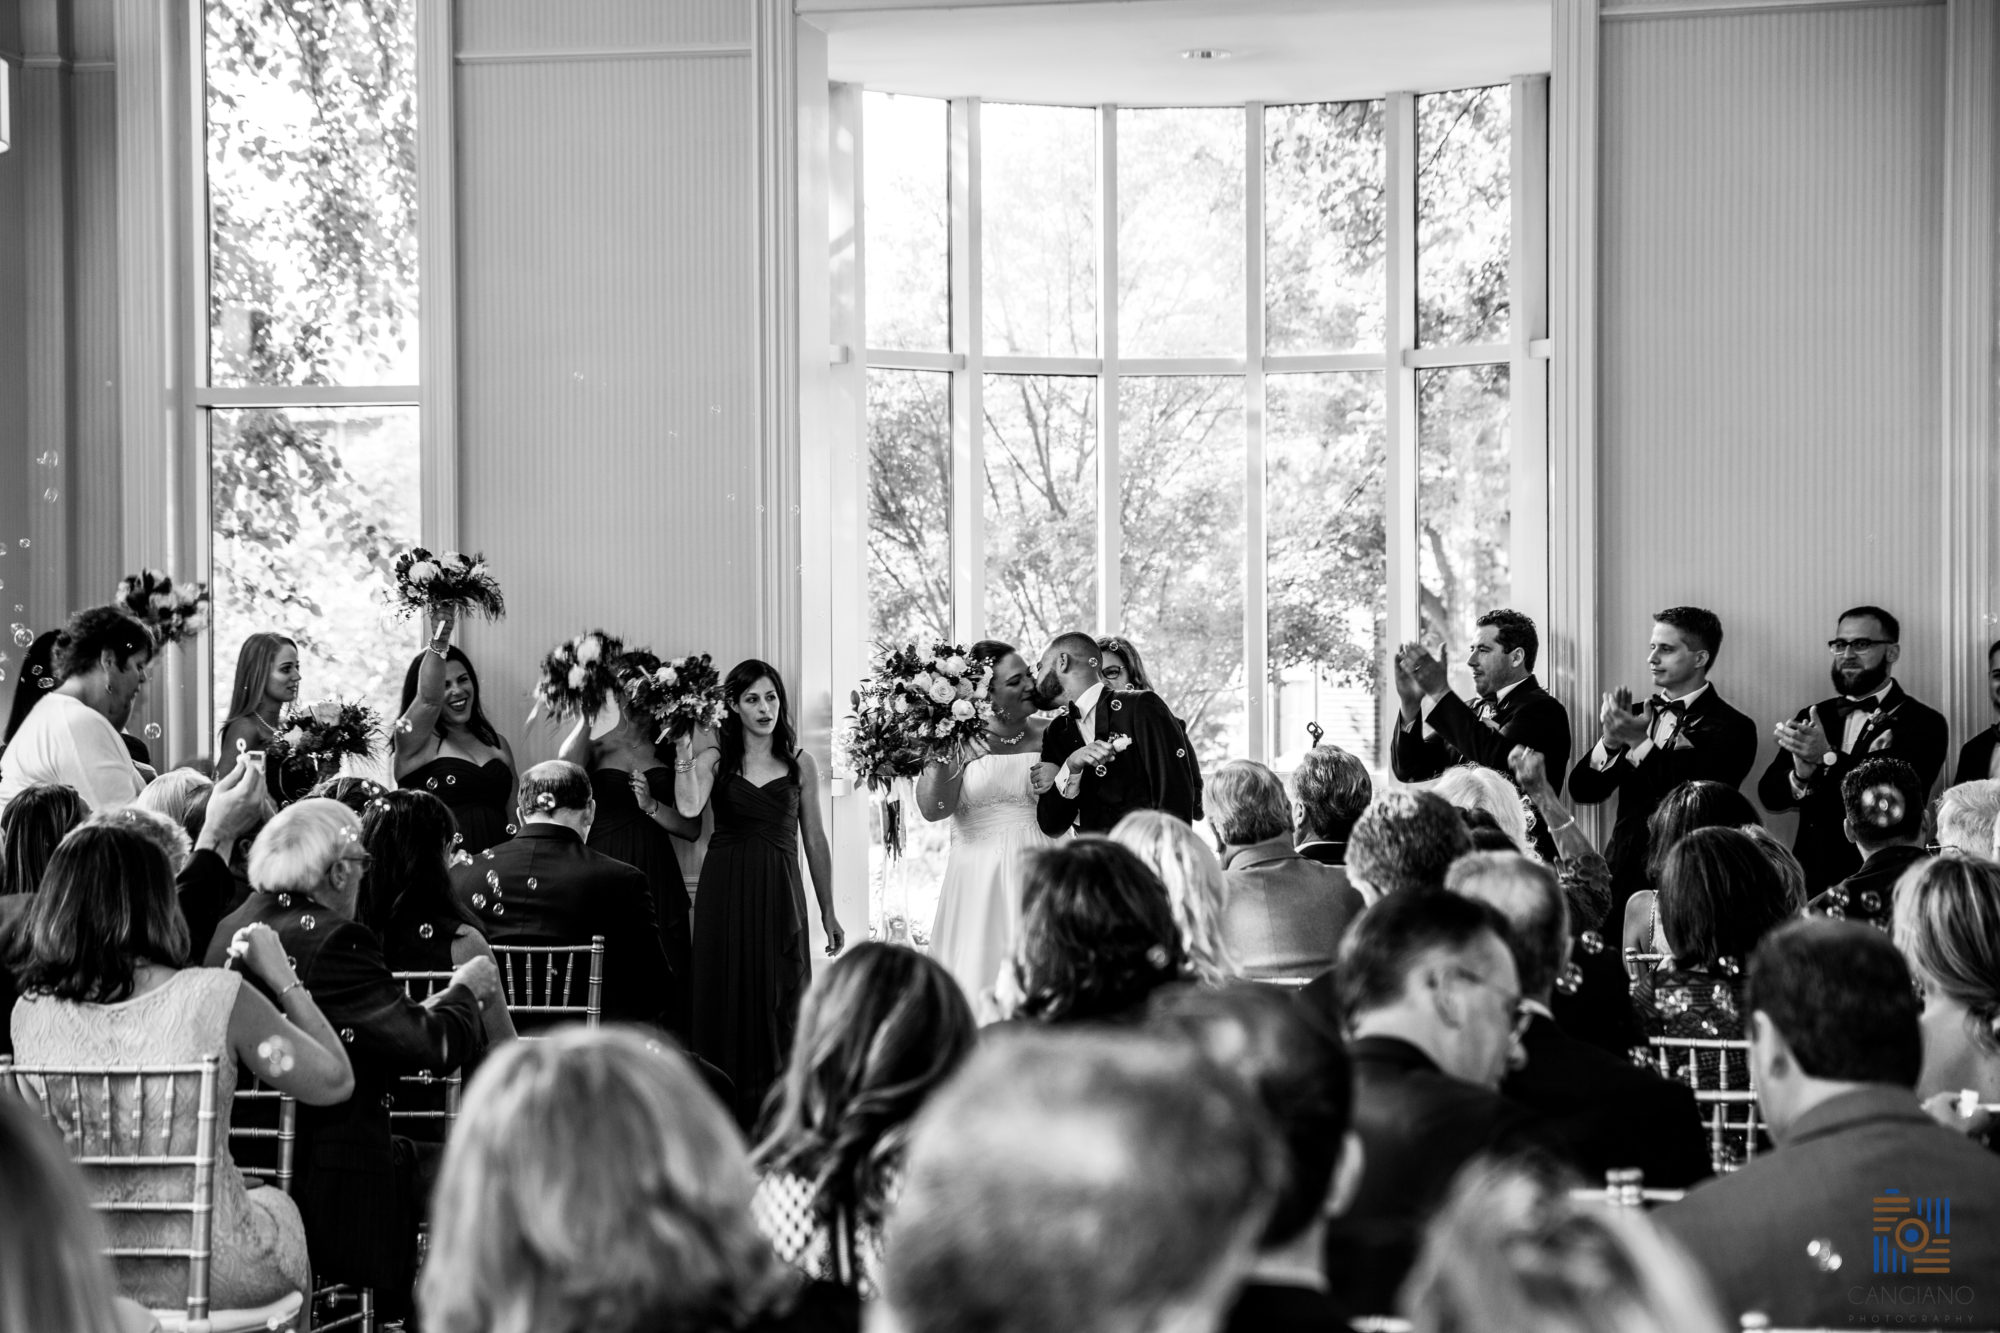 Cangiano Photography | Why I Still Love Black and White Wedding Photography